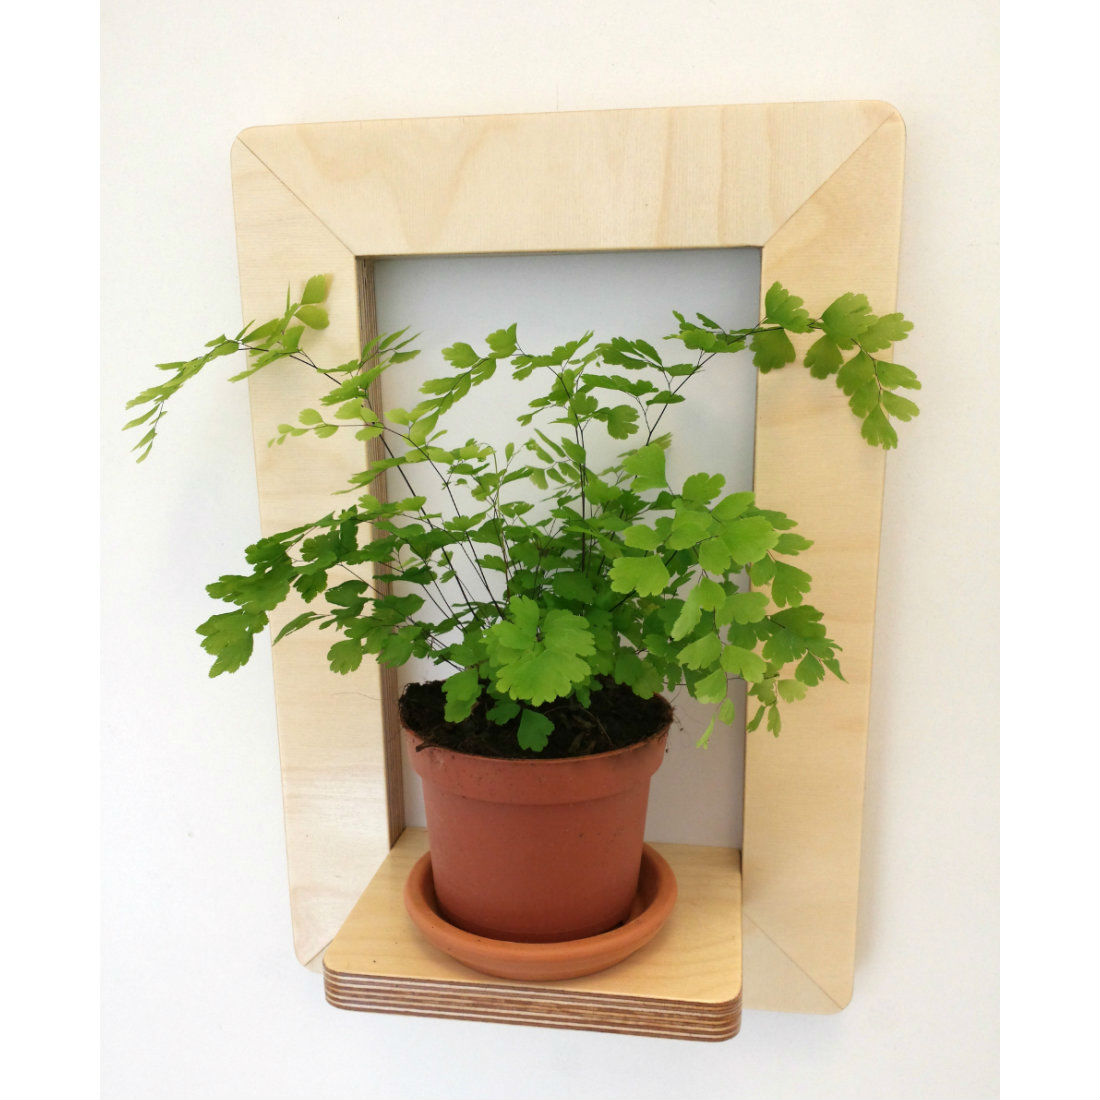 Marco Frame Shelf with plant from brightblueliving.com